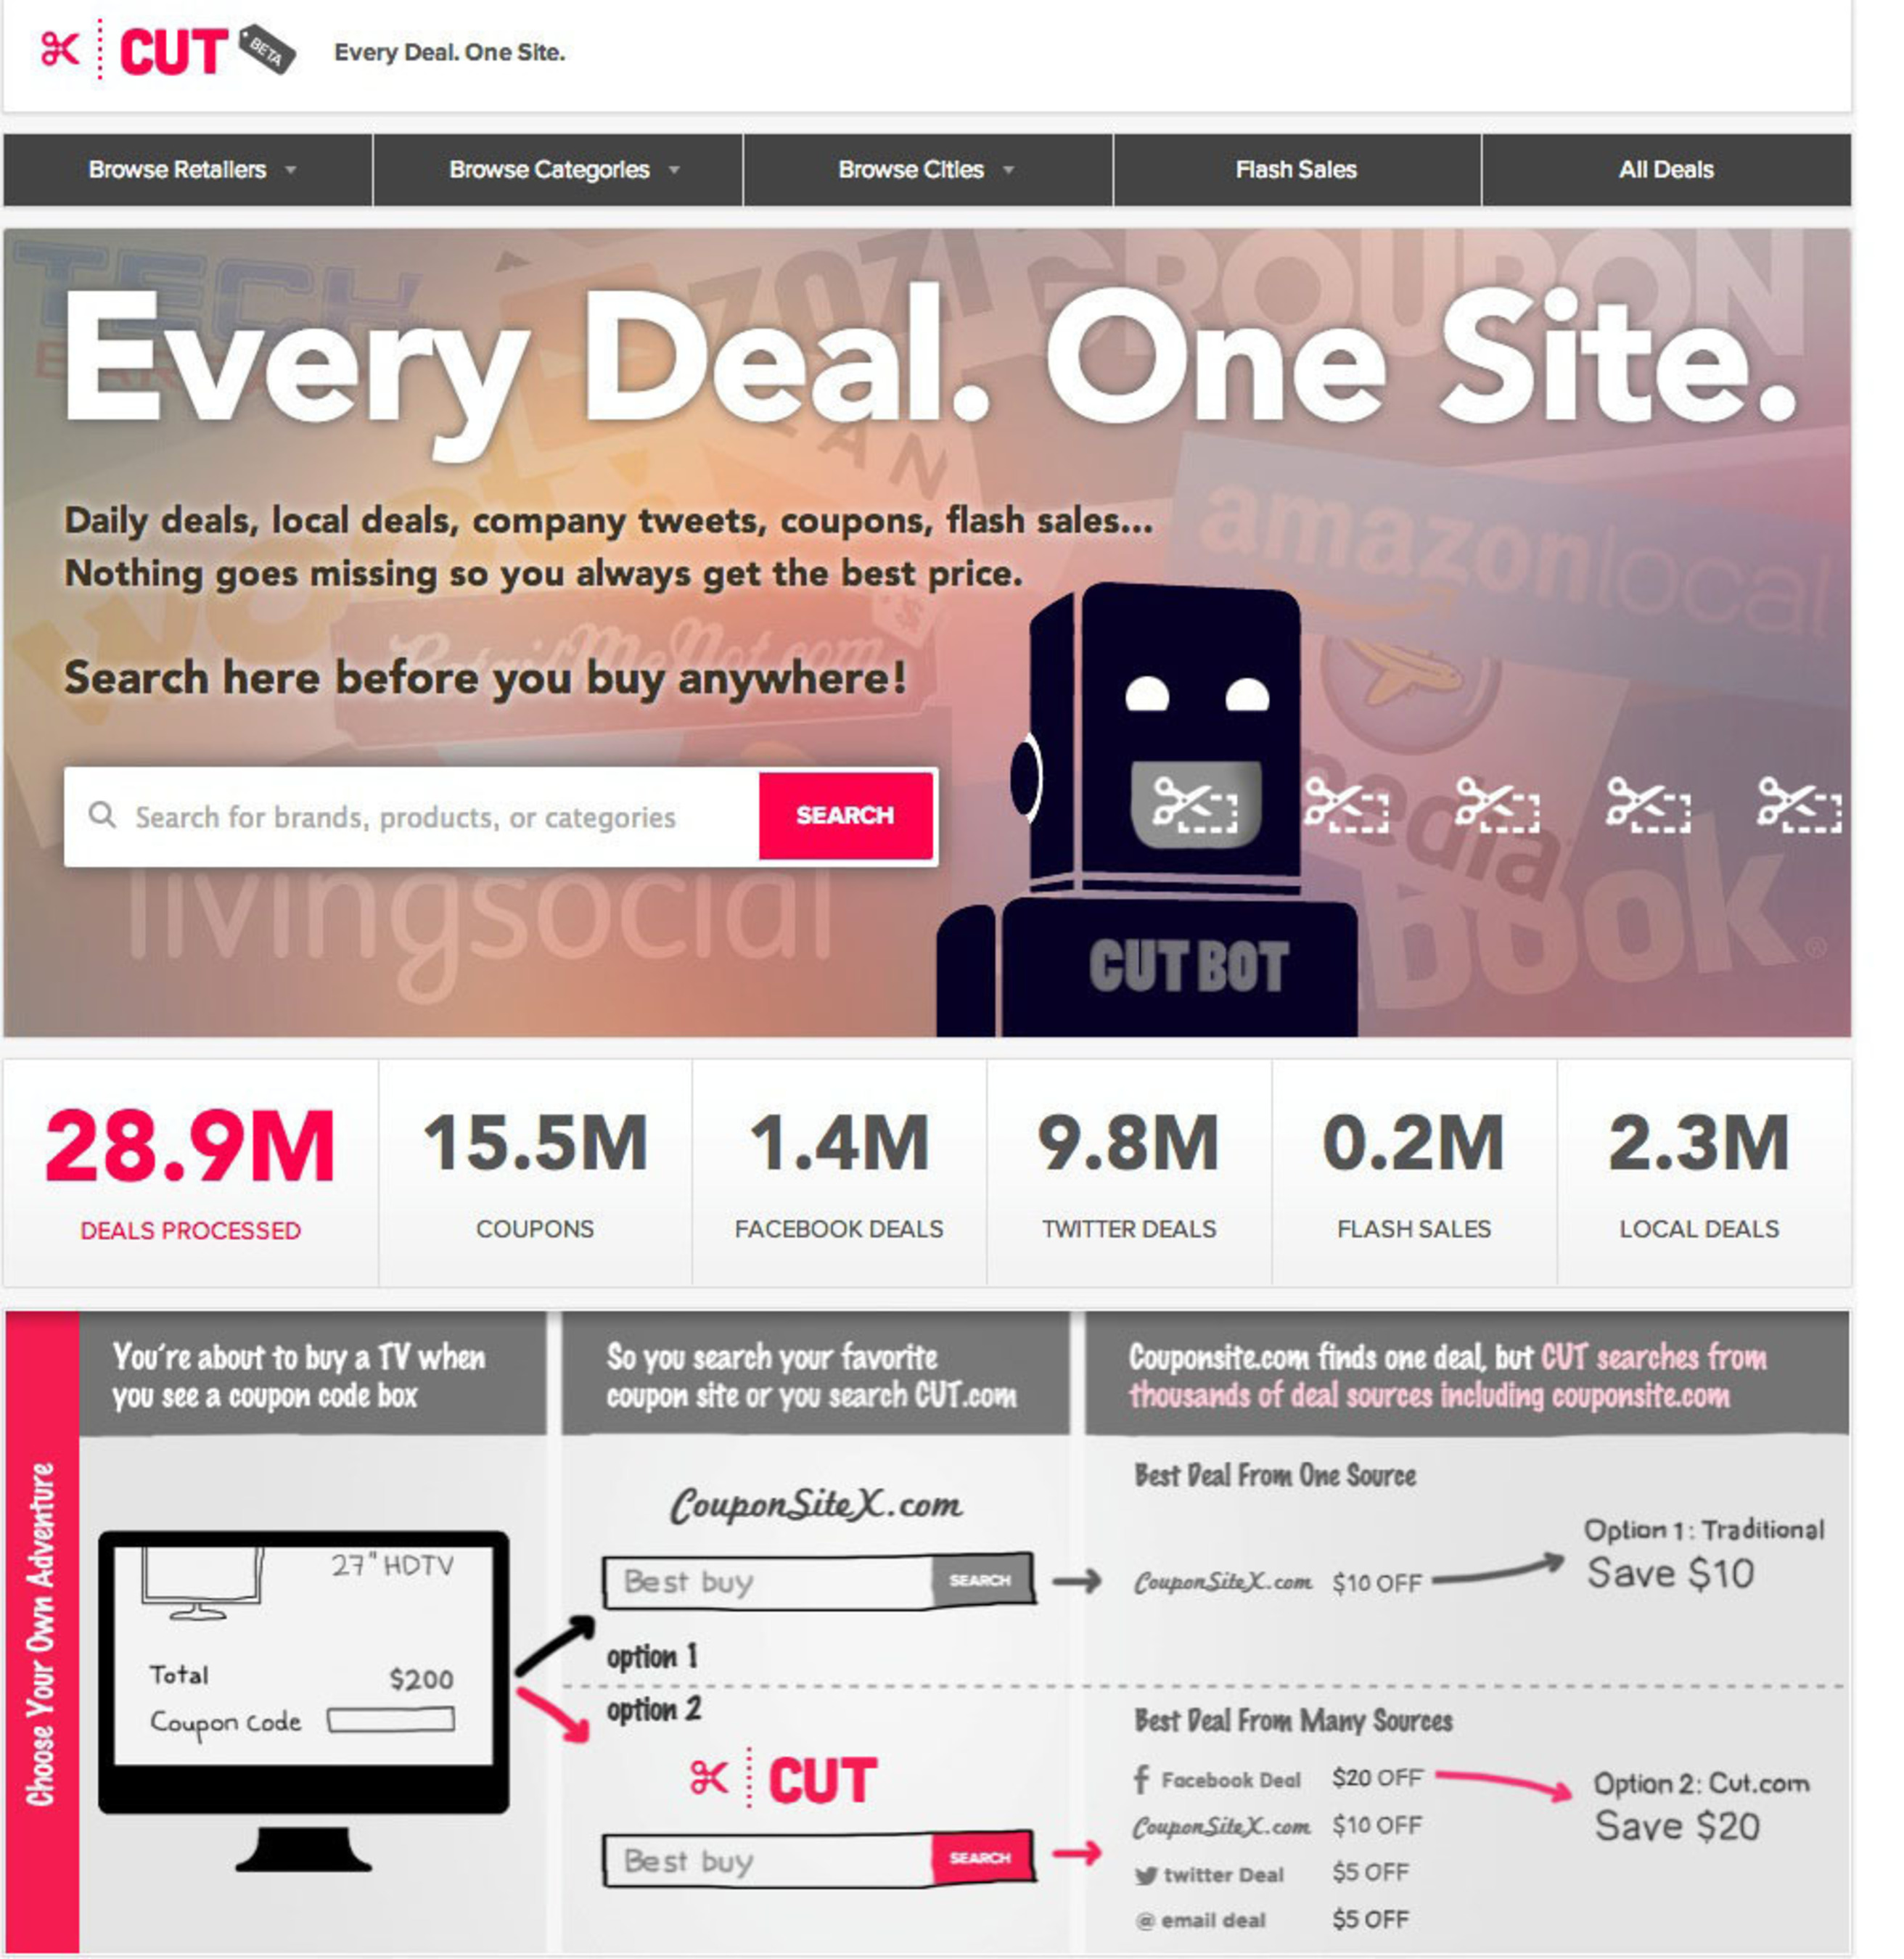 Cut.com Homepage - Every Deal. One Site.  (PRNewsFoto/Cut.com)